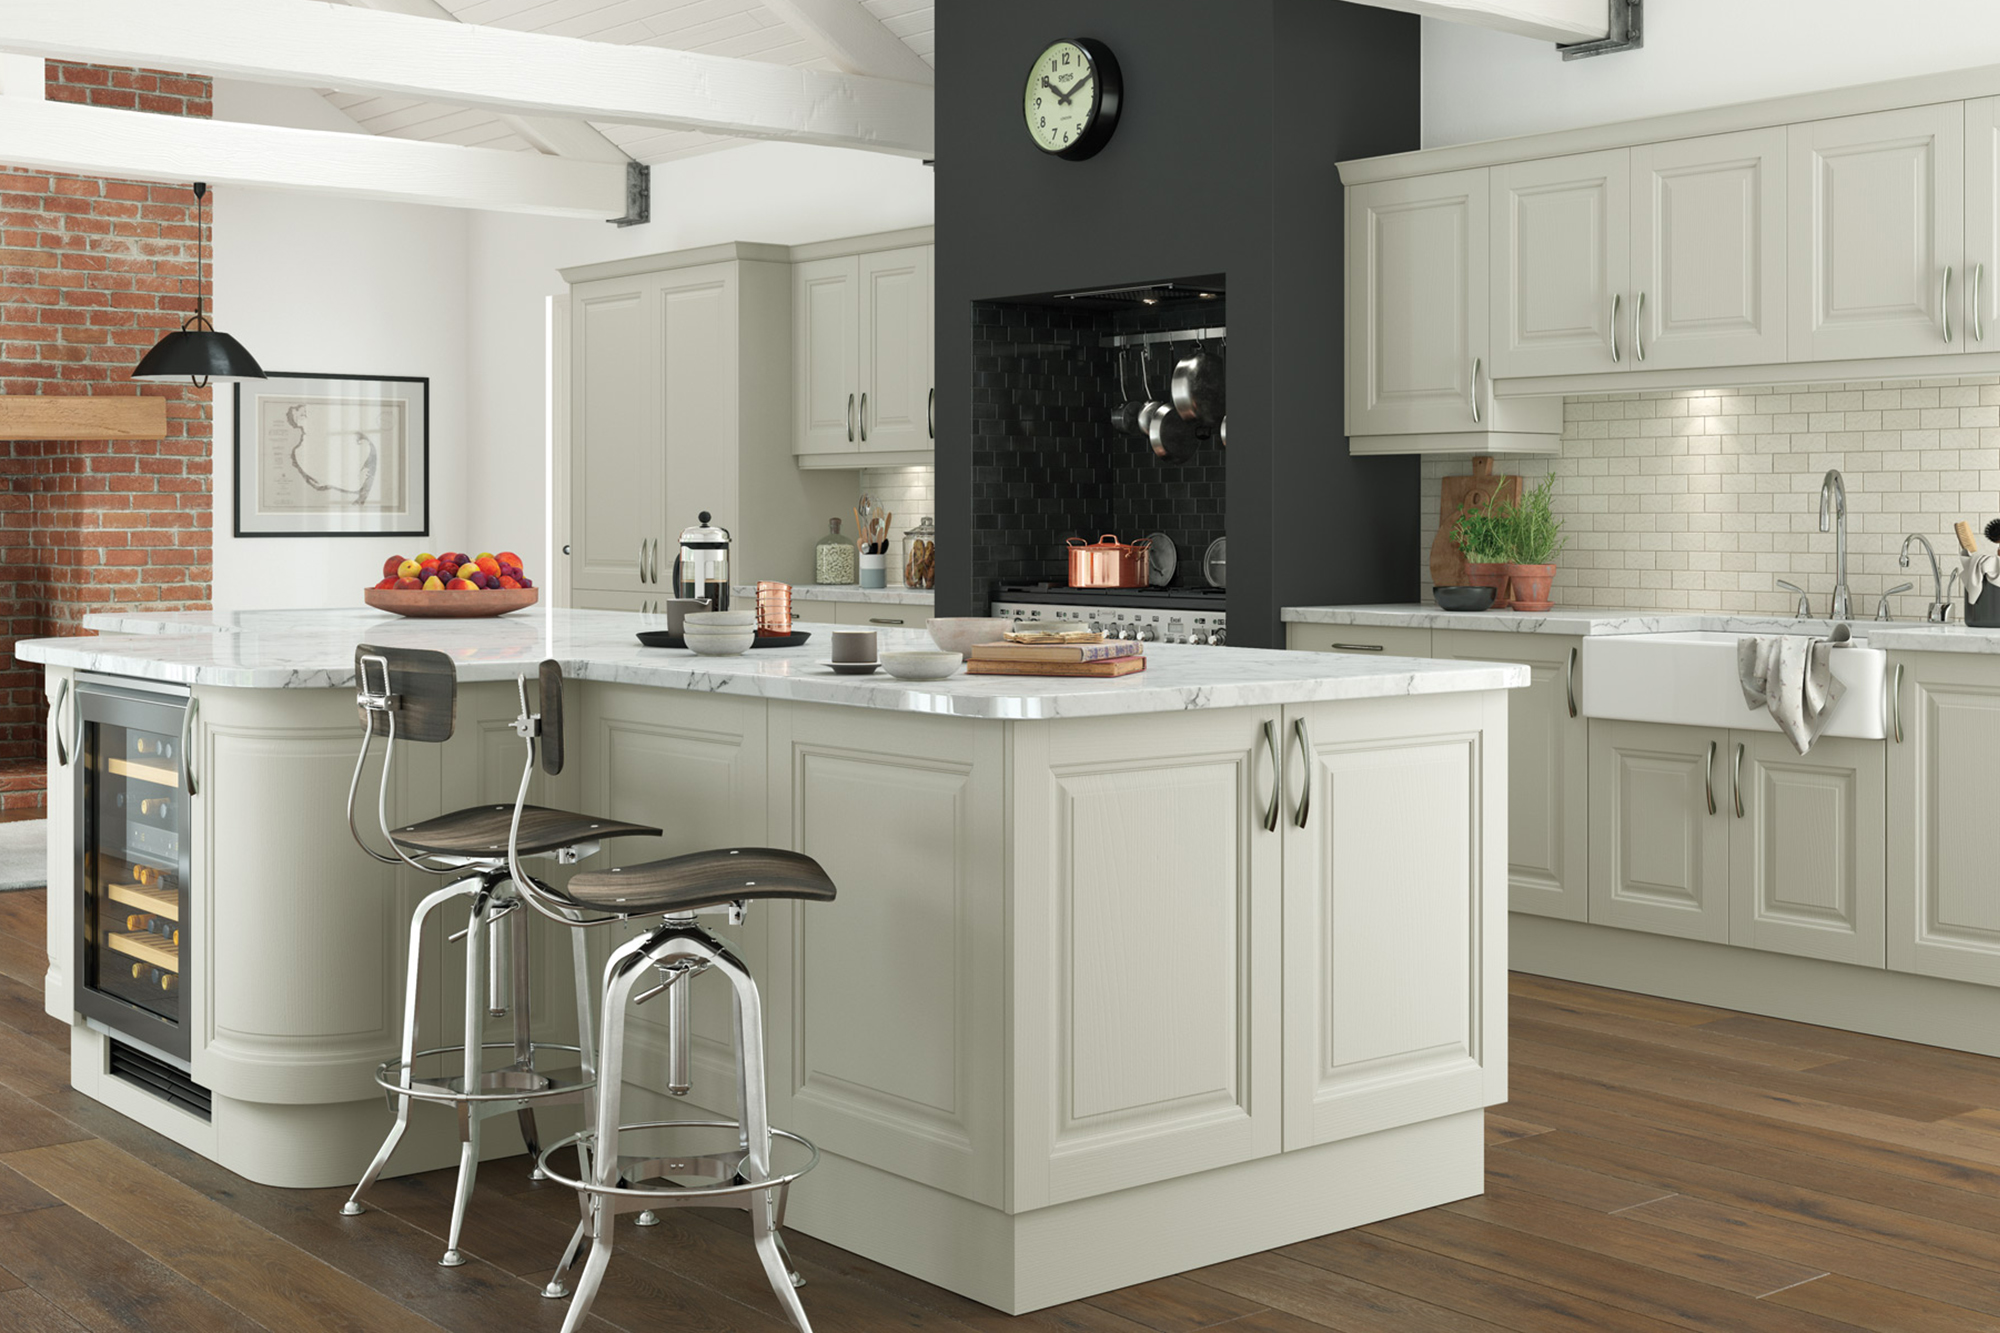 Jefferson Mussel : Cheap Kitchen Units And Cabinets For